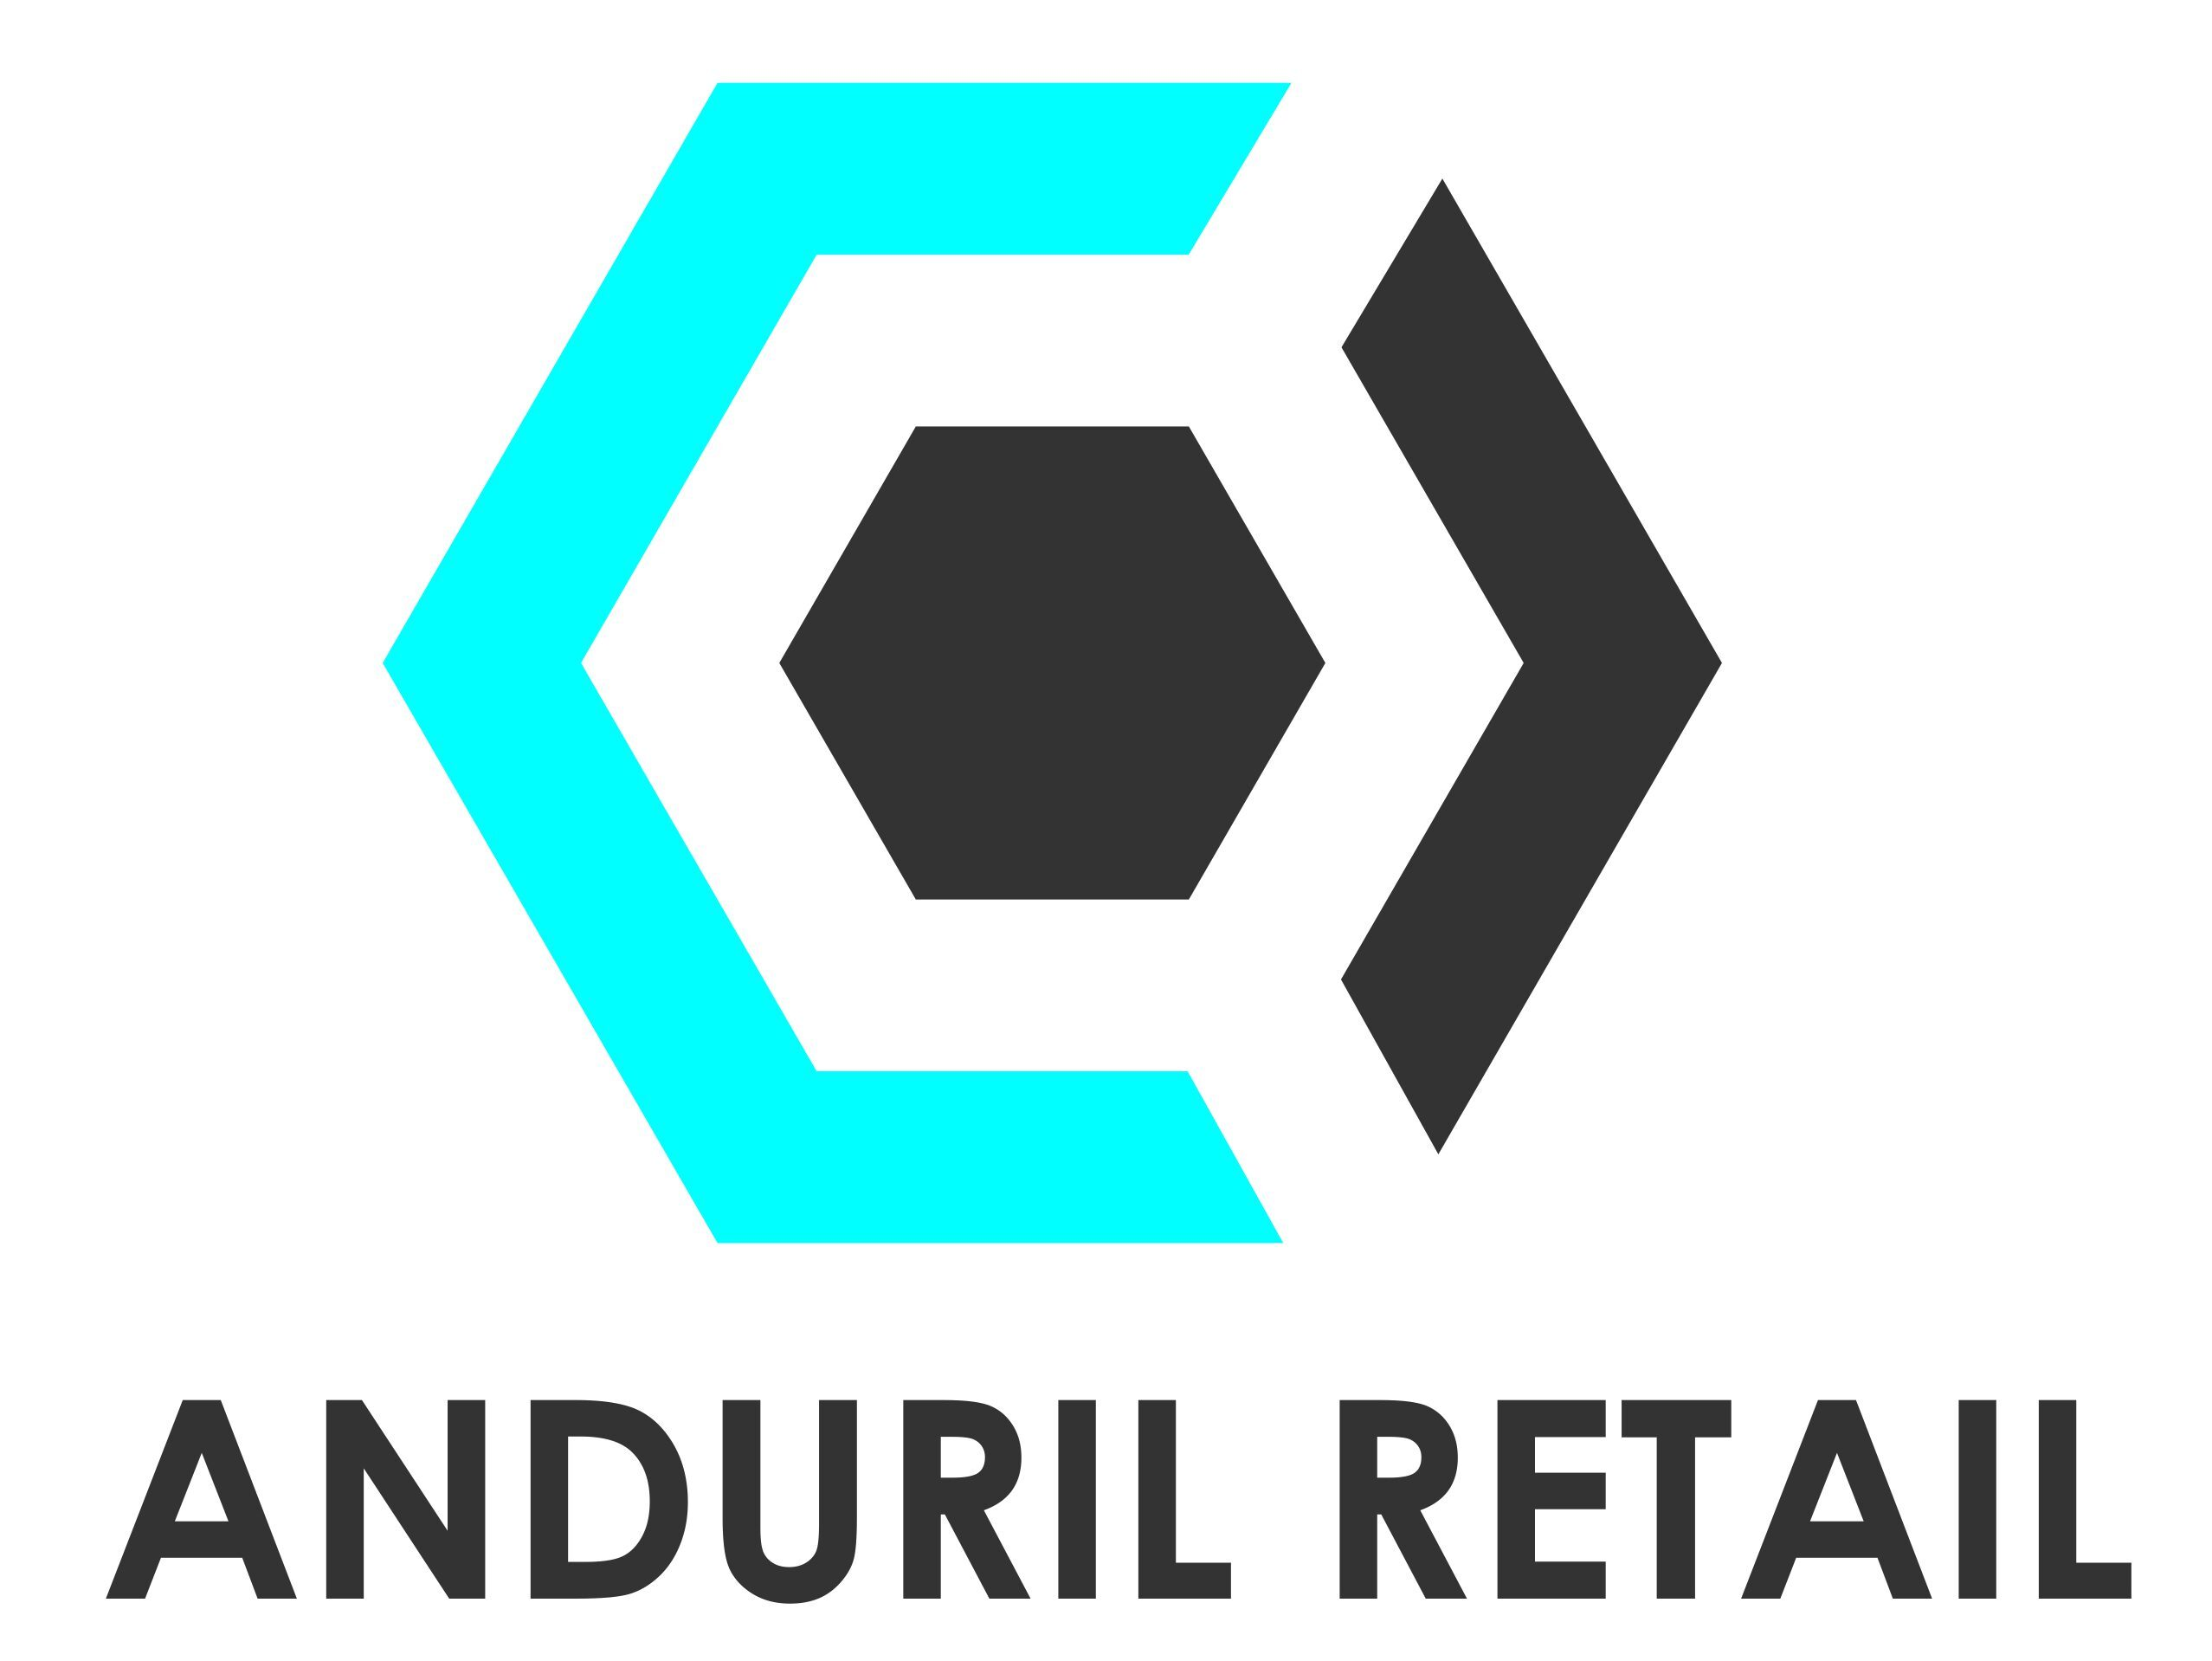 Anduril Retail